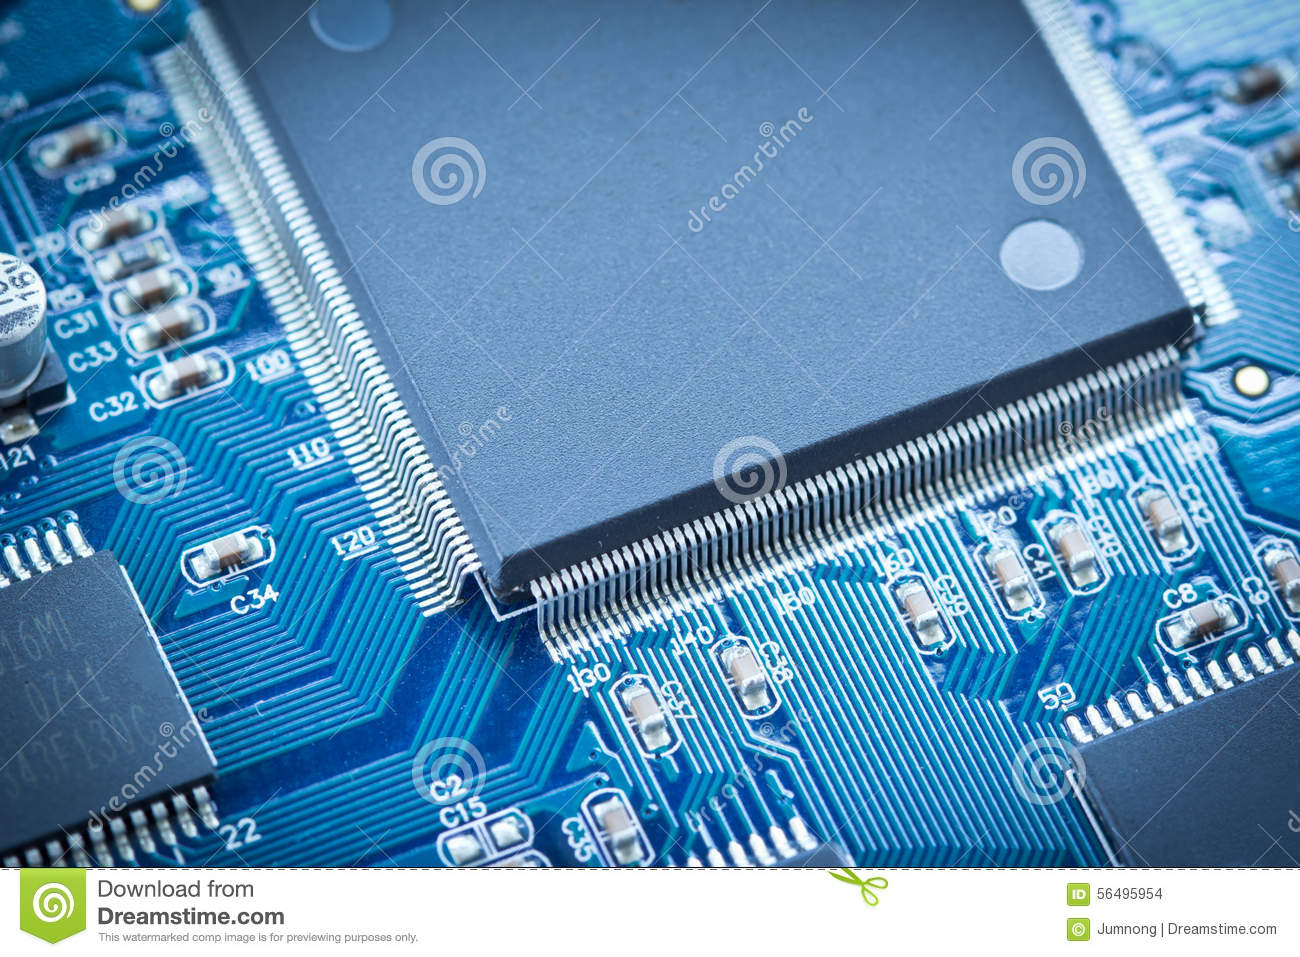 Mother Board 49816799 likewise Red Circuit Board On A Black Background Image 1923330 furthermore Embedded  puter as well 2014 12 Germanium Silicon Cmos Devices together with Microcontroller. on integrated circuit computer